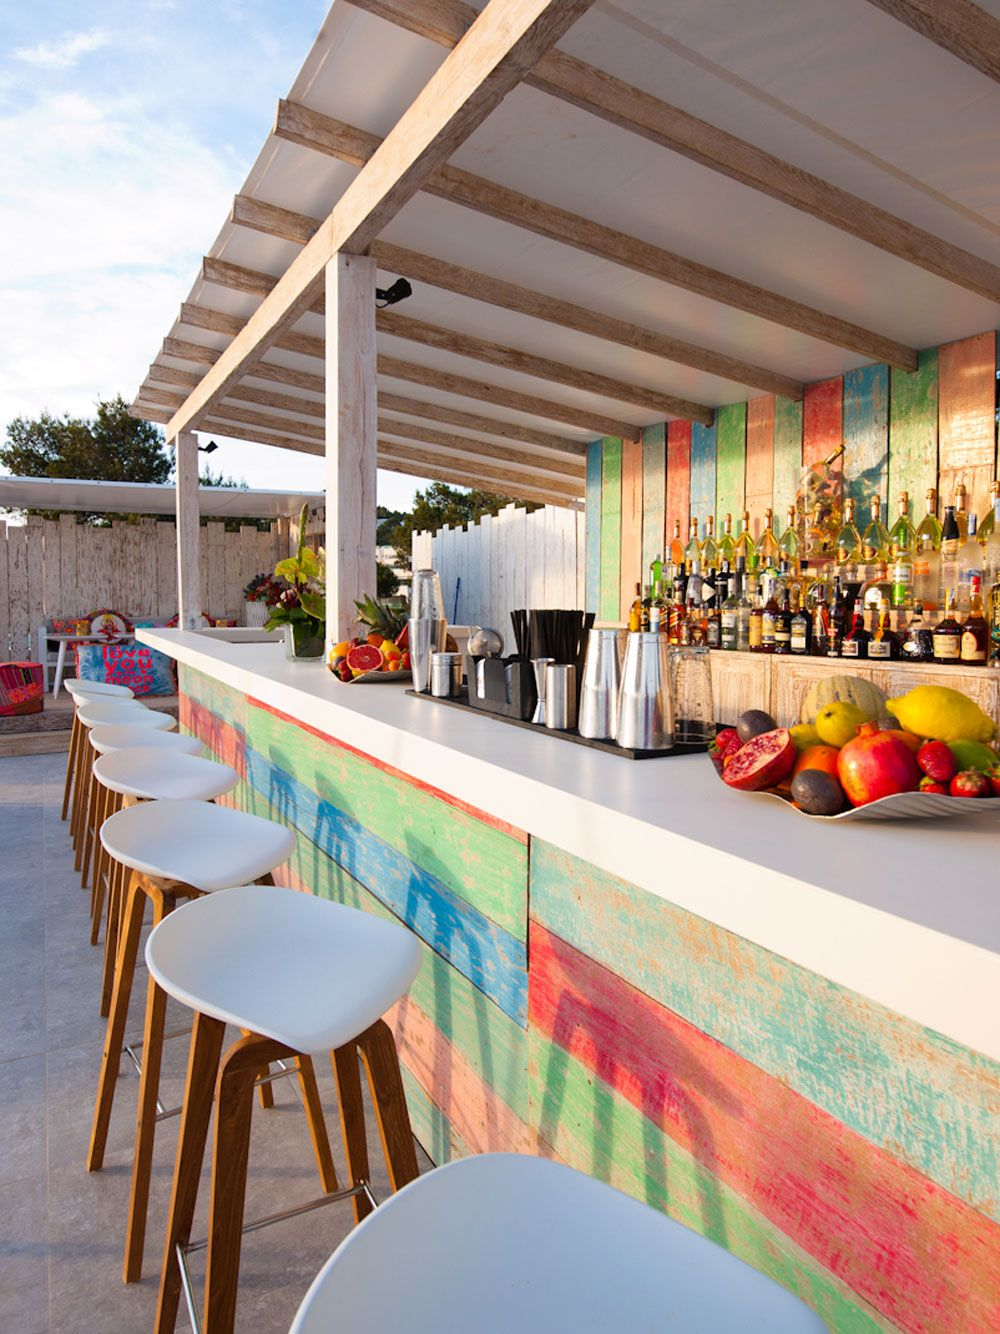 New boho luxe hotspot in ibiza patchwork restaurant sa for Design patchwork stuhl ibiza